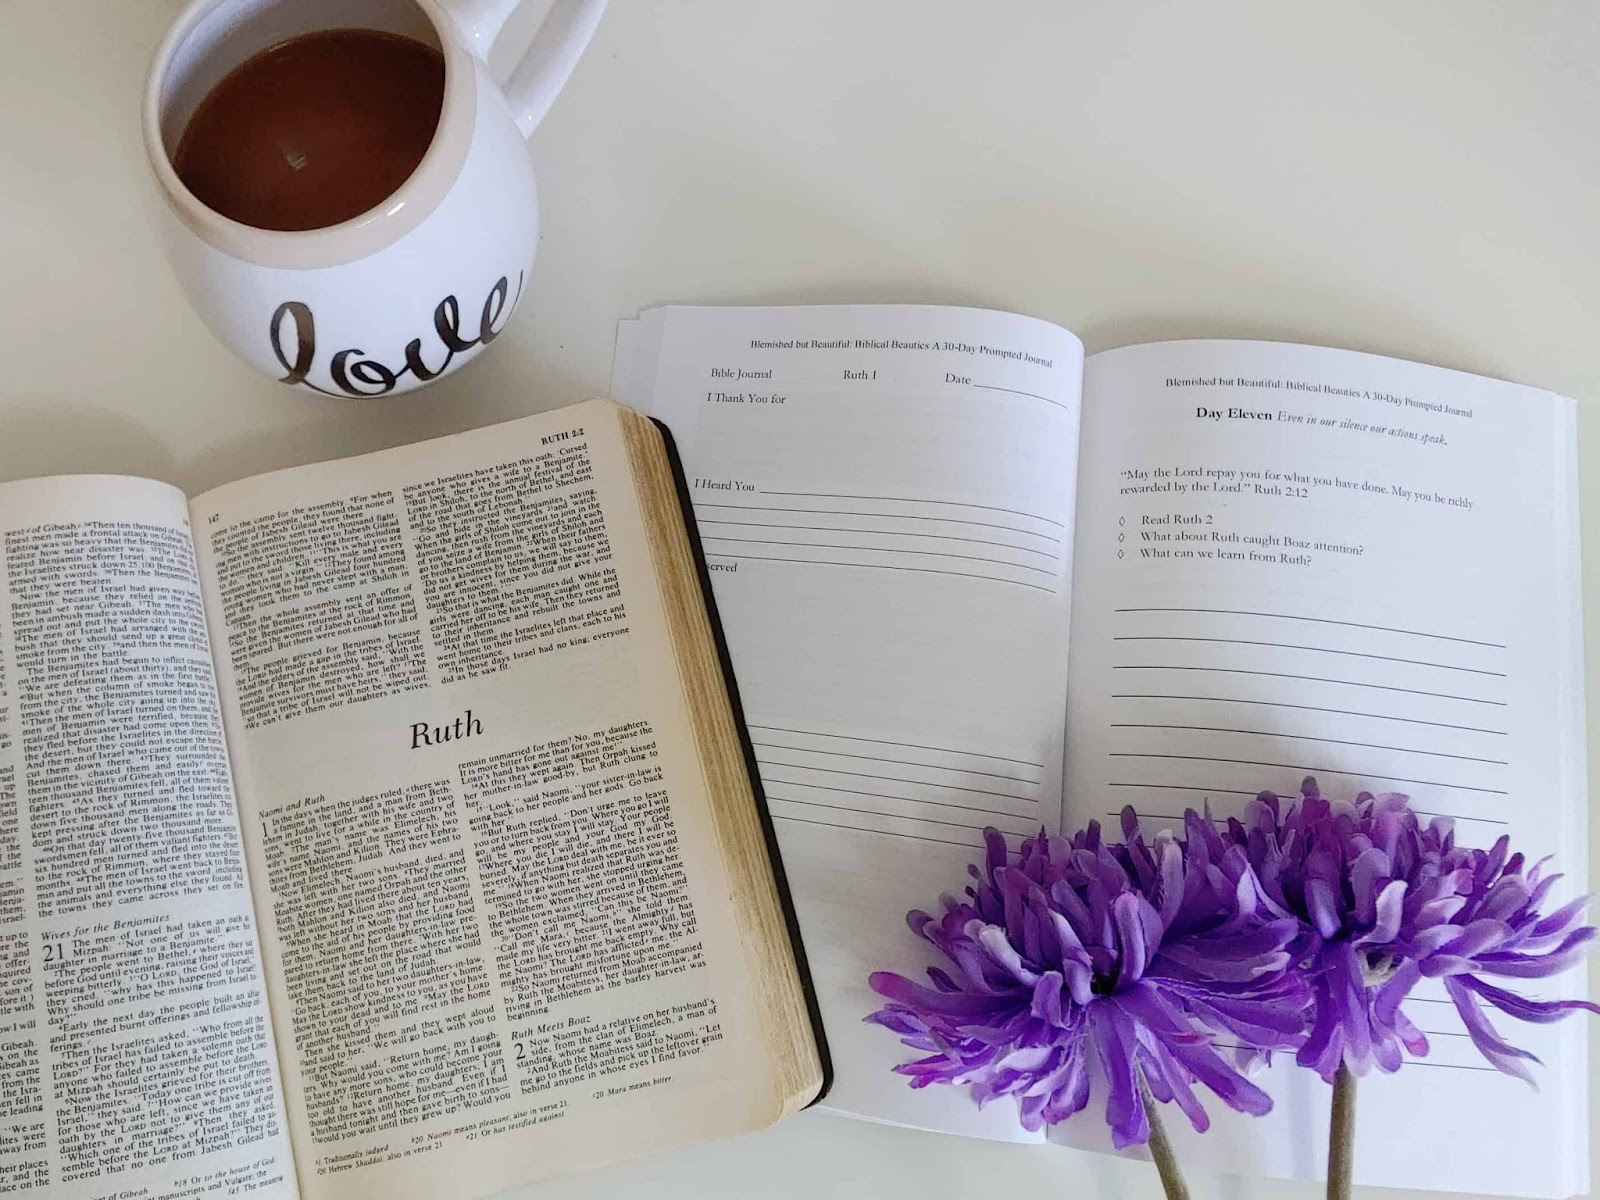 Bible study journal | Learn from these women in the bible how you can overcome anything with faith. These scriptures will help uplift and reinforce the strength and wisdom women possess. Bible Journaling Plan | Womanhood | Bible study notes | Scripture Reading Plan | Bible study plans | Bible journal notebook | #bibleverse #biblestudyjournal #journal